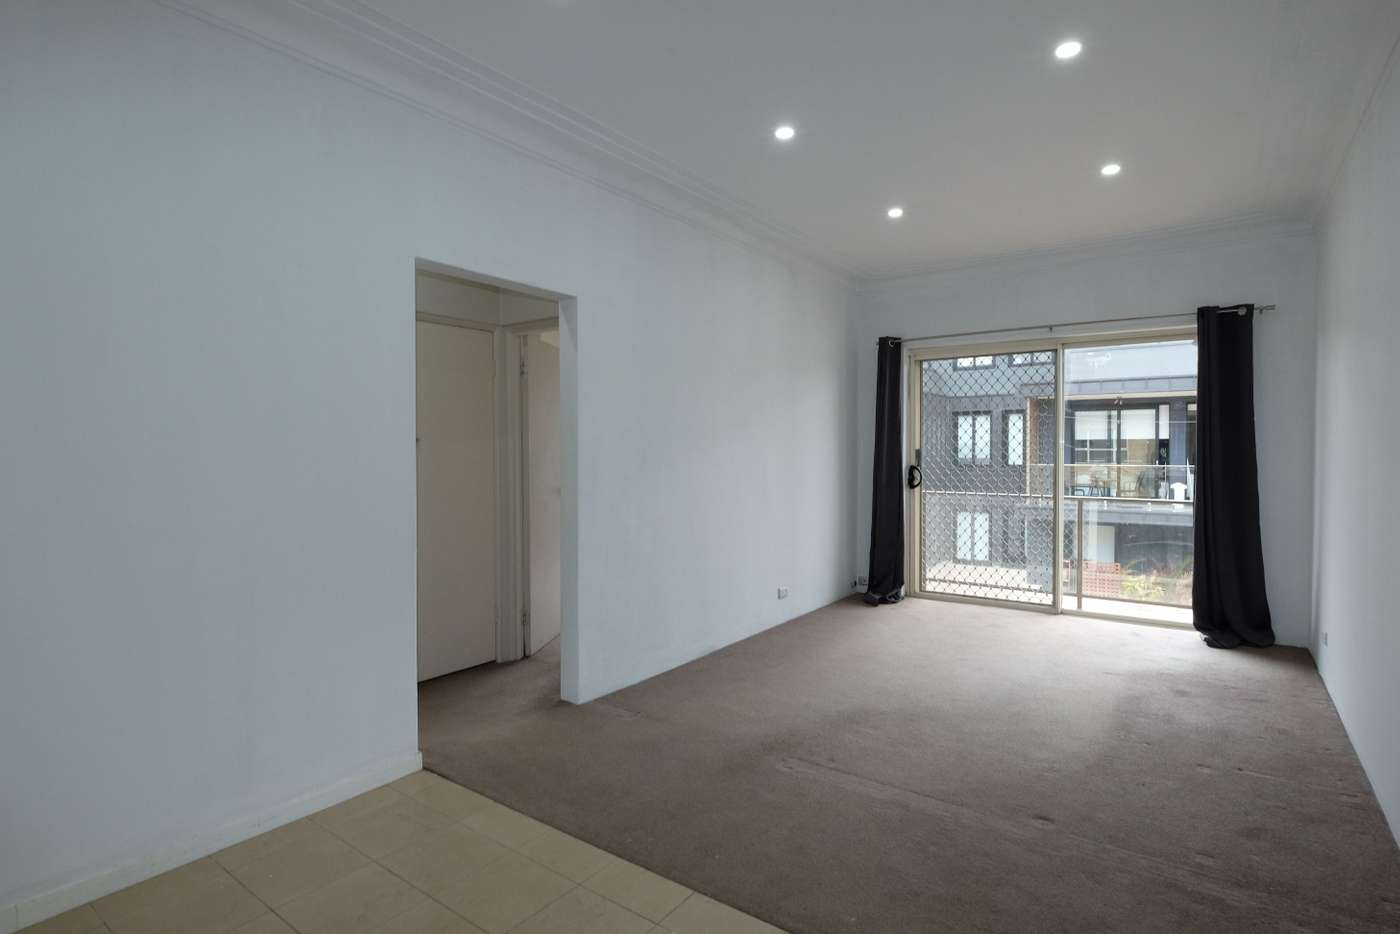 Main view of Homely apartment listing, 9/45 Boronia Street, Kensington NSW 2033